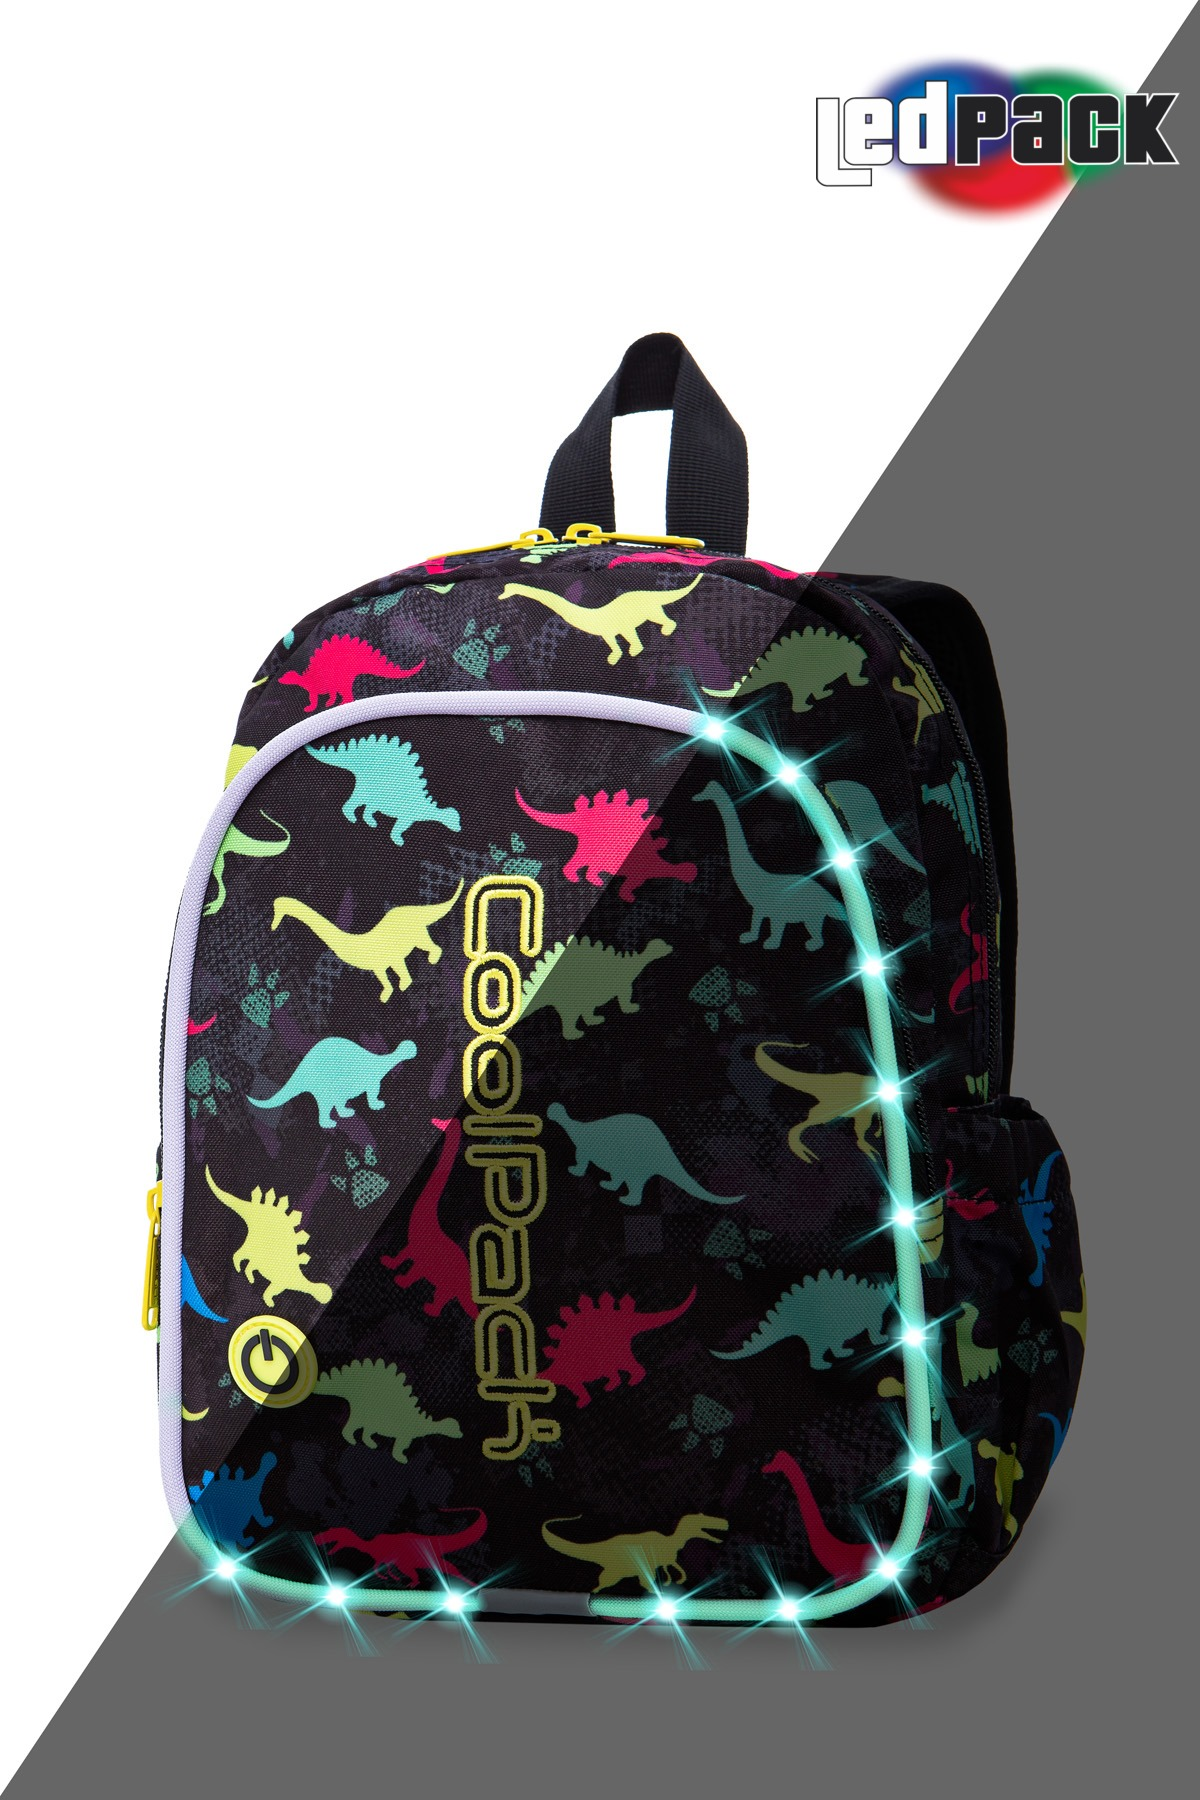 Coolpack - bobby - kids backpack - led dinosaurs